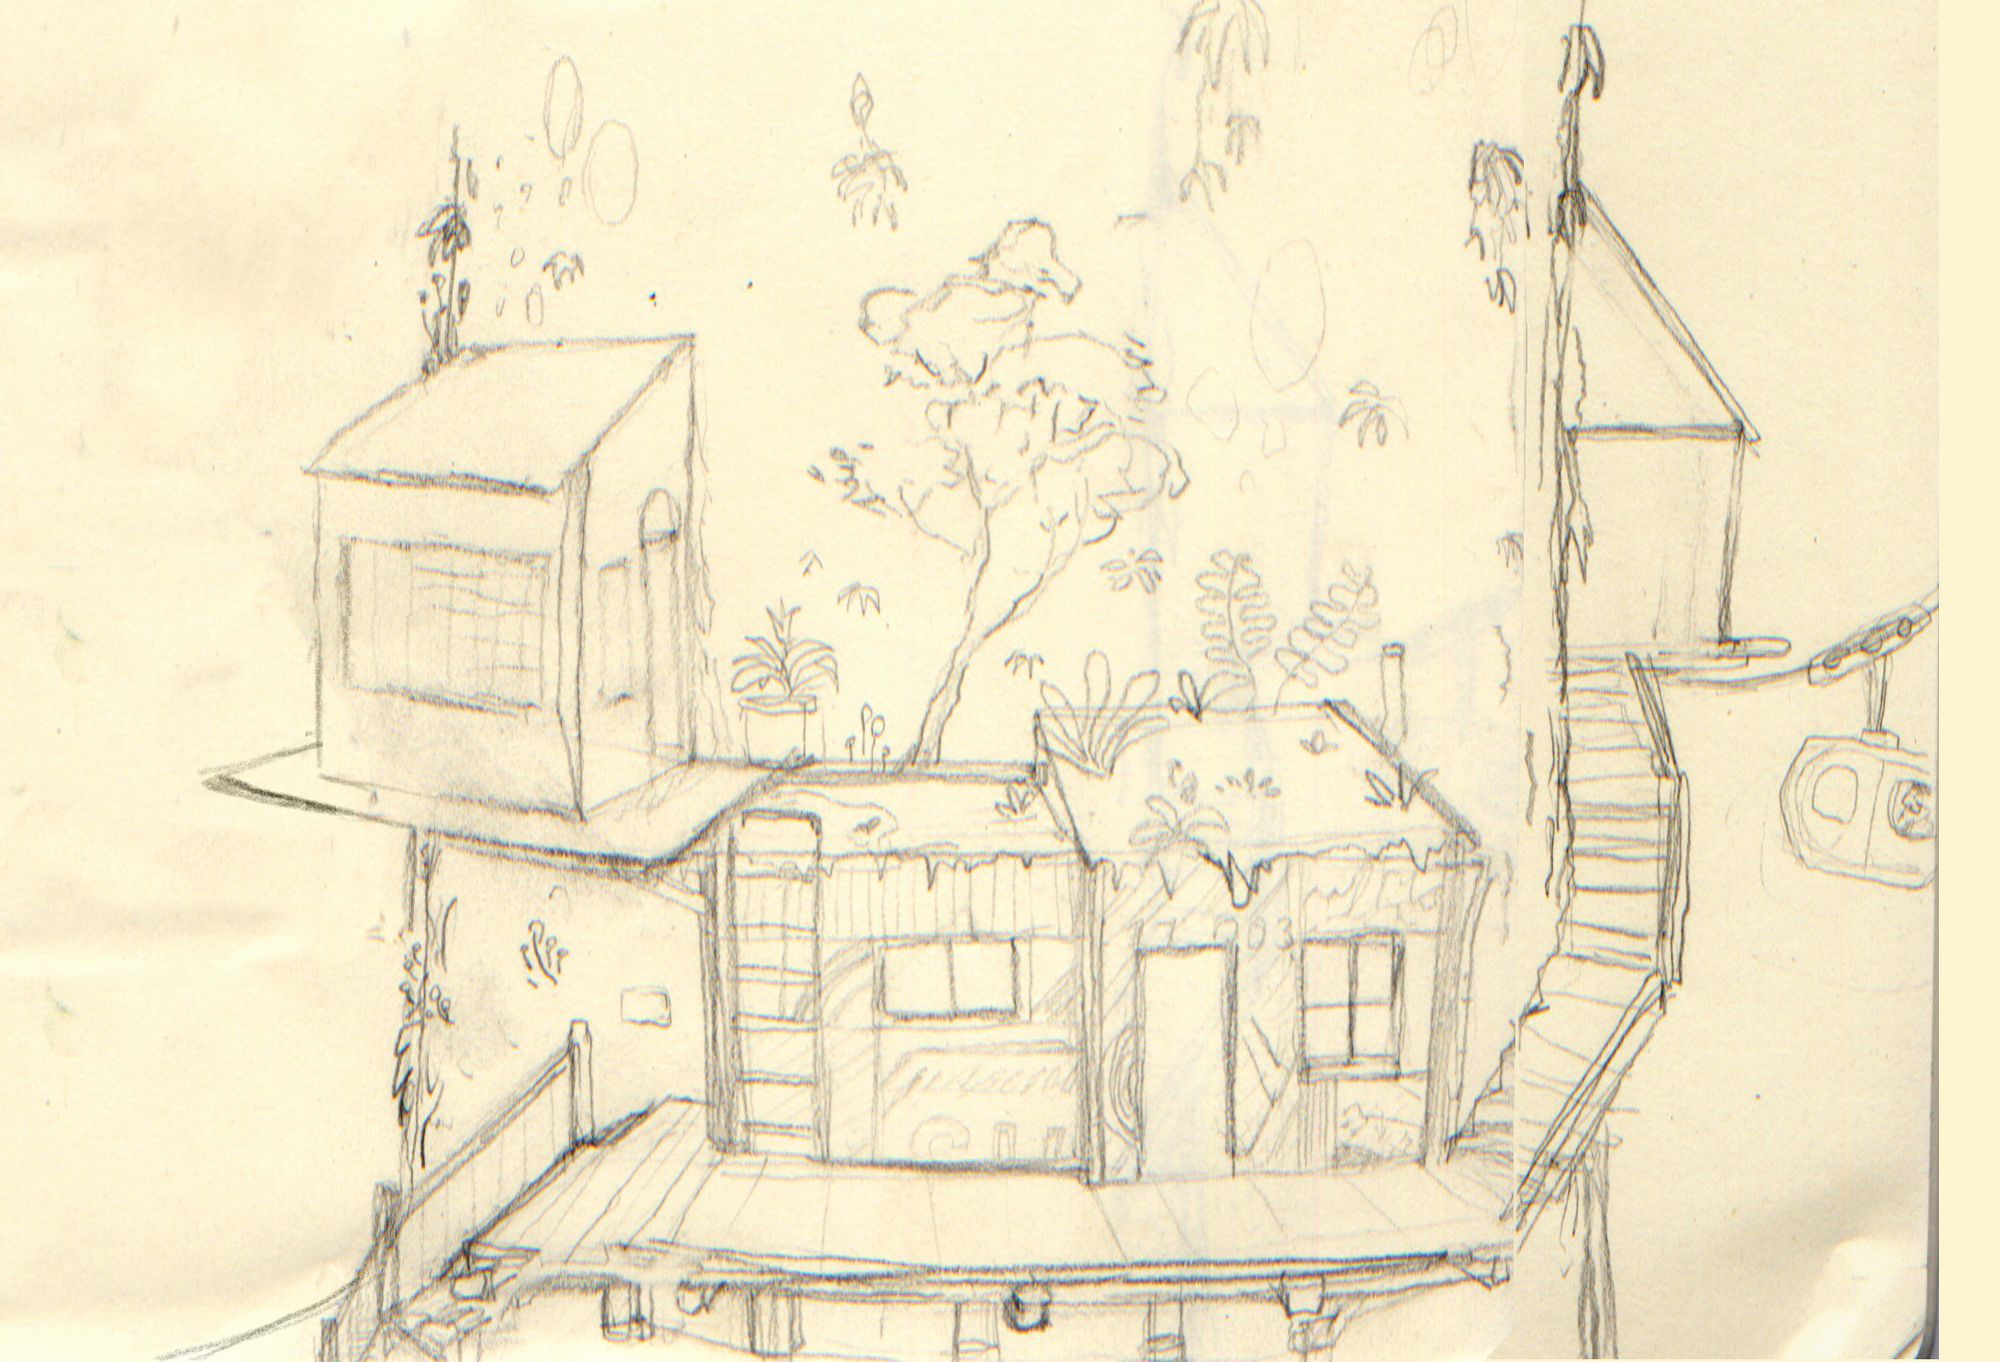 an early sketch of the rooftop garden